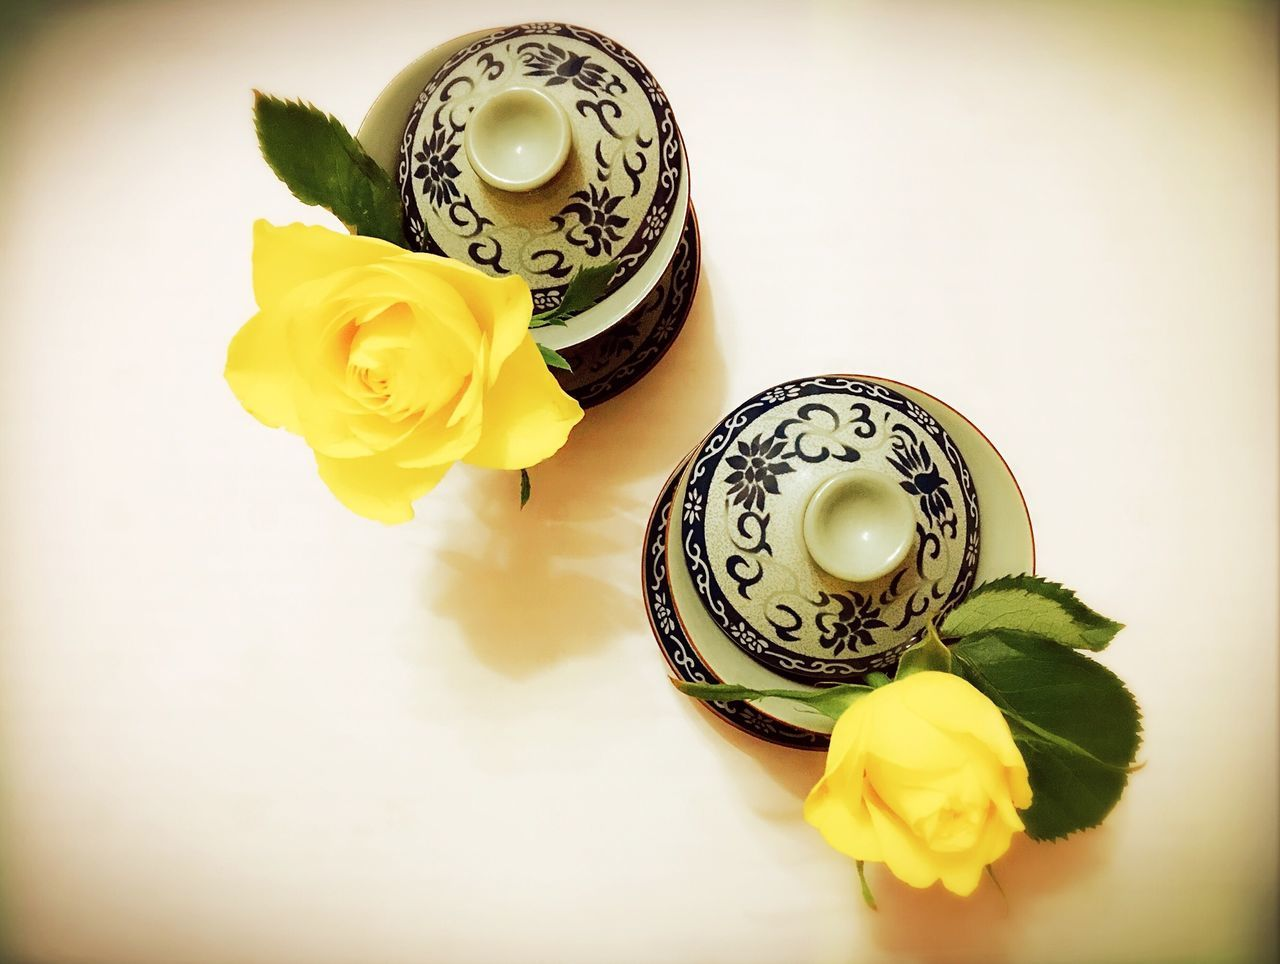 Teacups Roses Yellow Flowers :) Rose - Flower Flower Head Still Life Petal Table No People Freshness Asia Style High Angle View Nature Decoration Beautiful Enjoying Life Hello World White Background